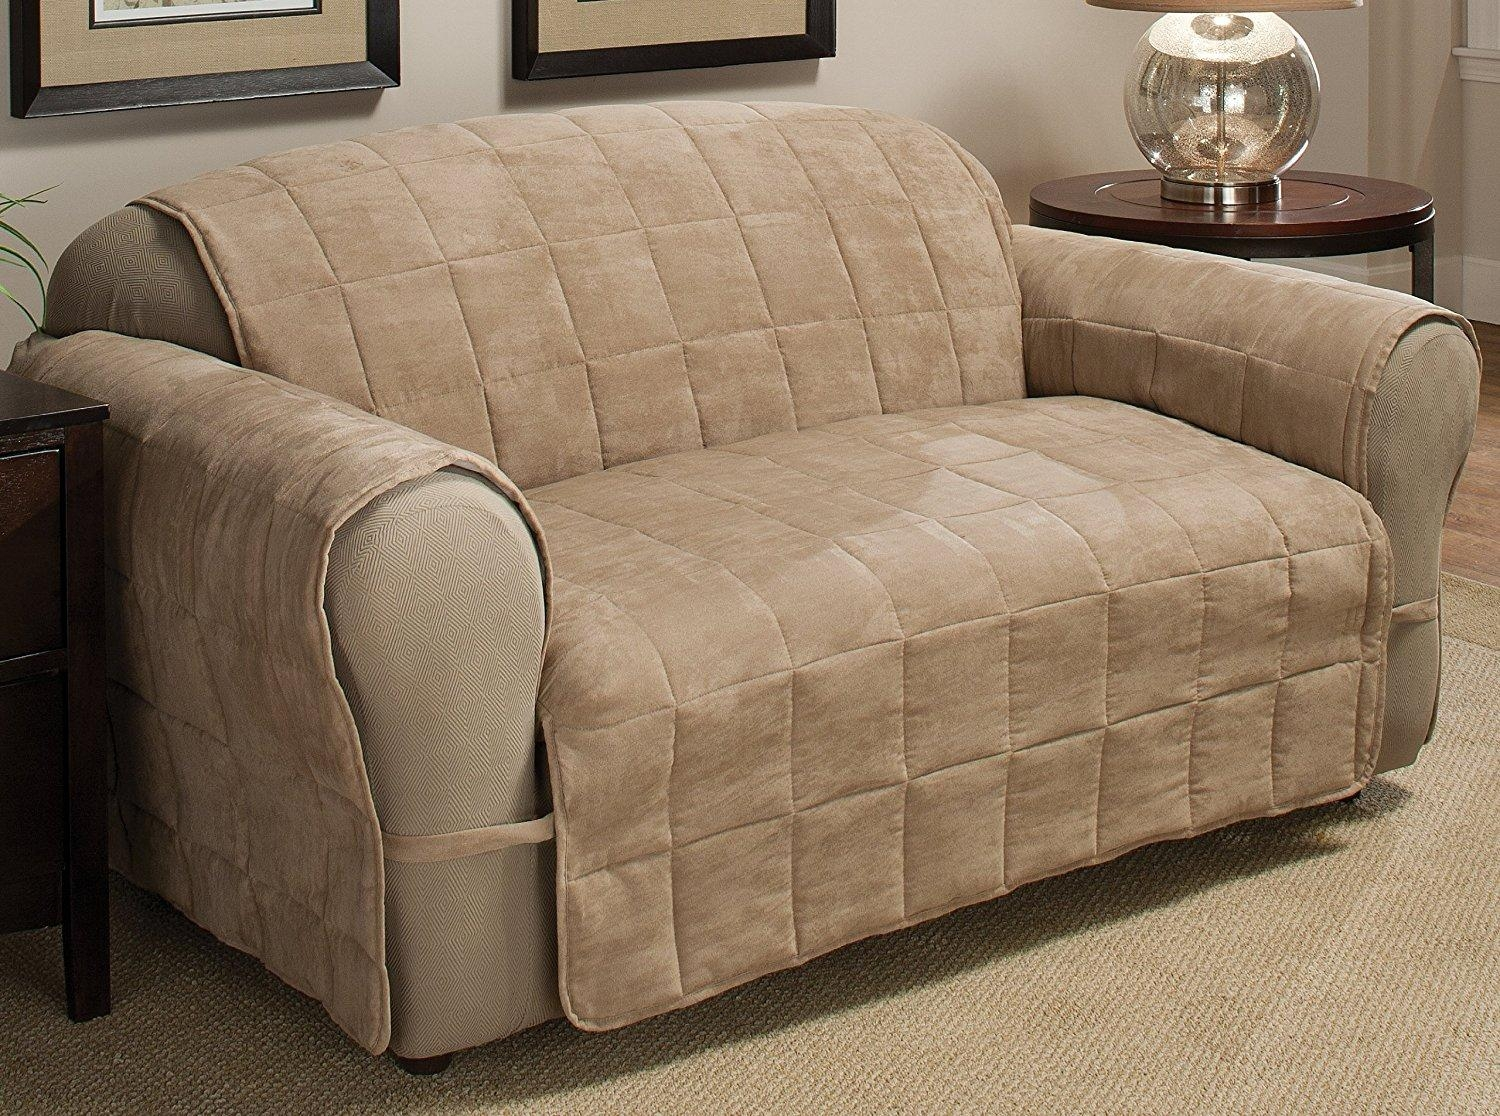 Furniture: Couch Slip Cover | Sofa Slipcover | Recliner Chair Covers Pertaining To Slipcover For Leather Sofas (View 14 of 20)